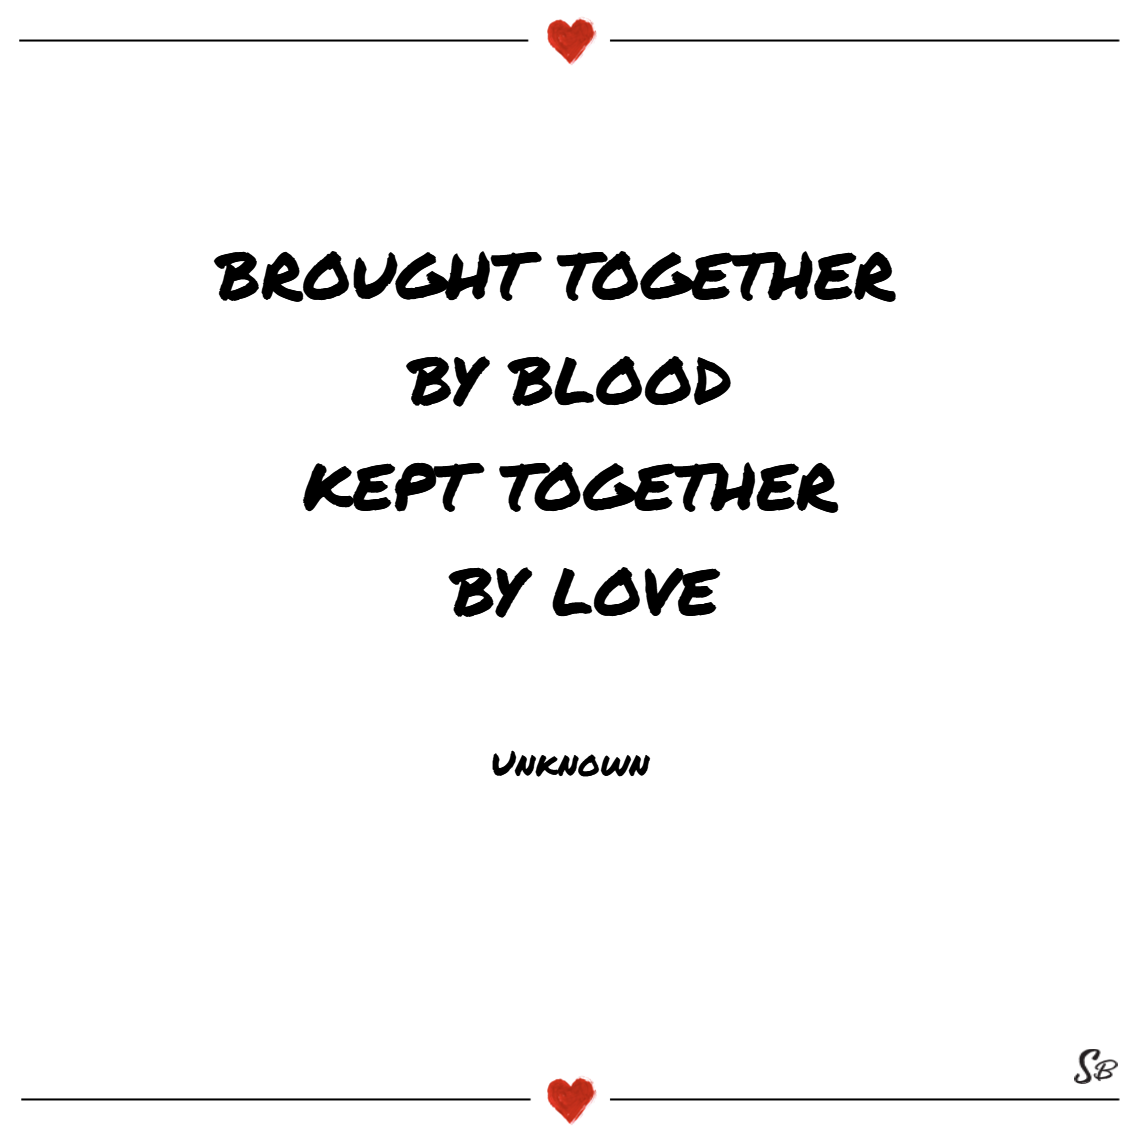 Brought together by blood, kept together by love. – unknown